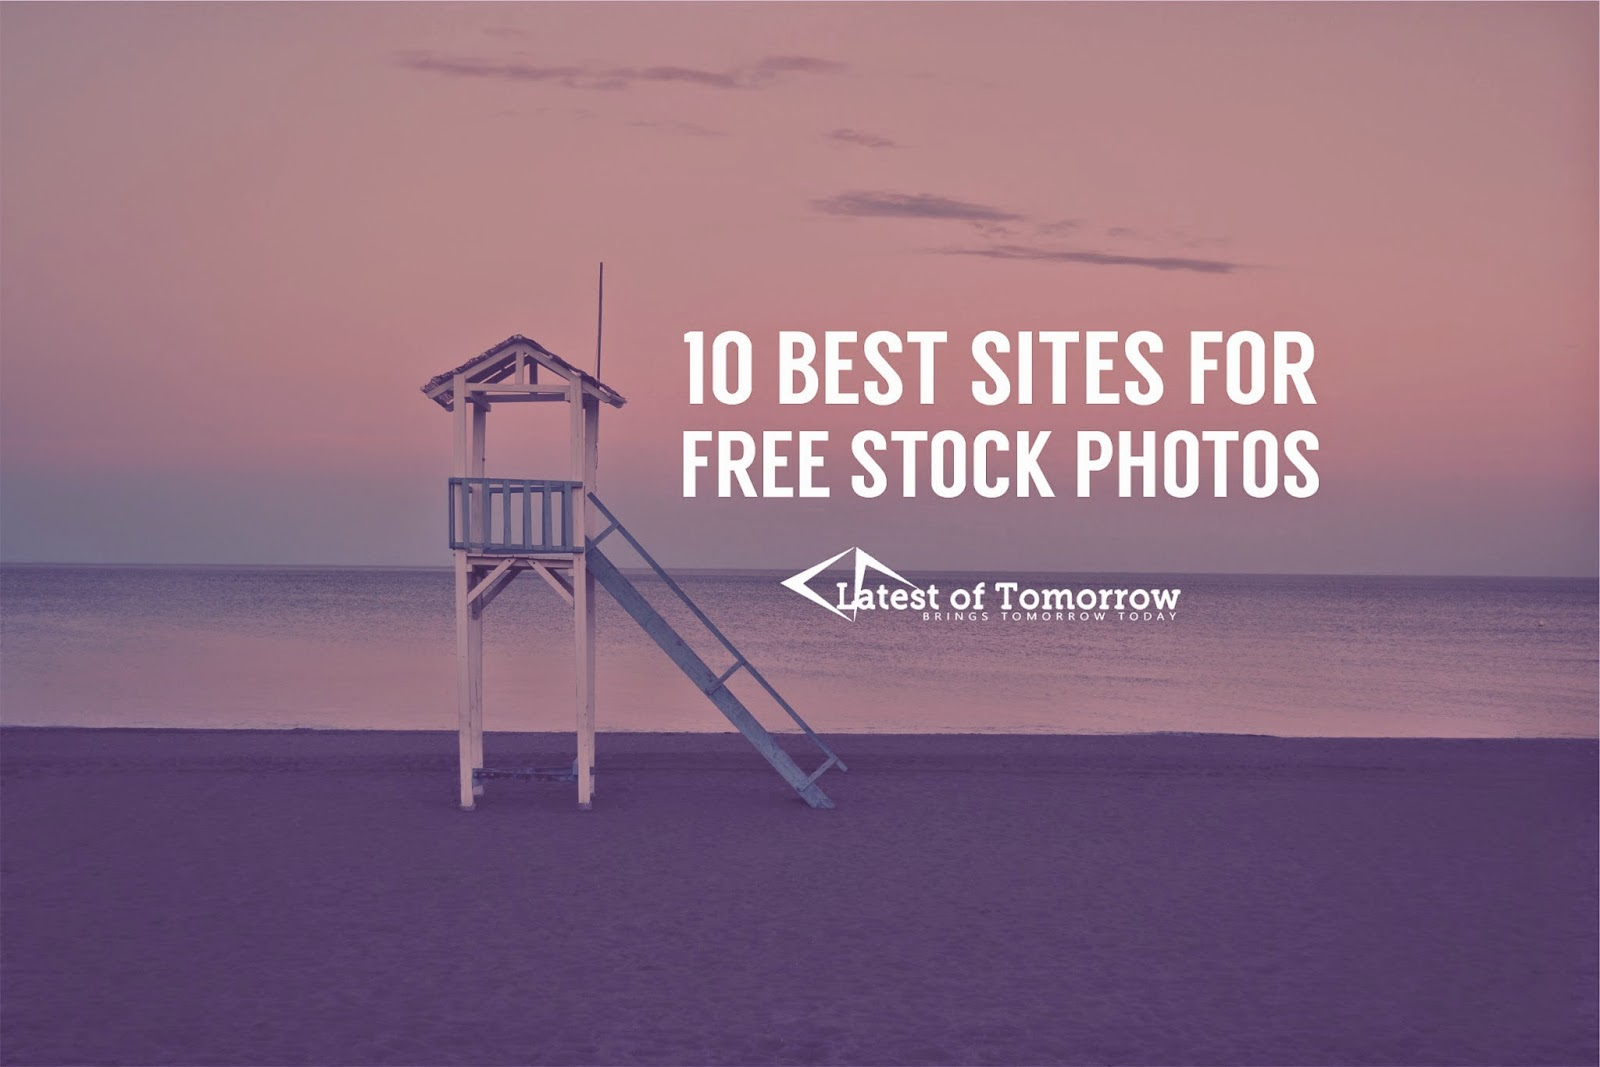 10 best websites to download stock photos for free for 10 best free websites